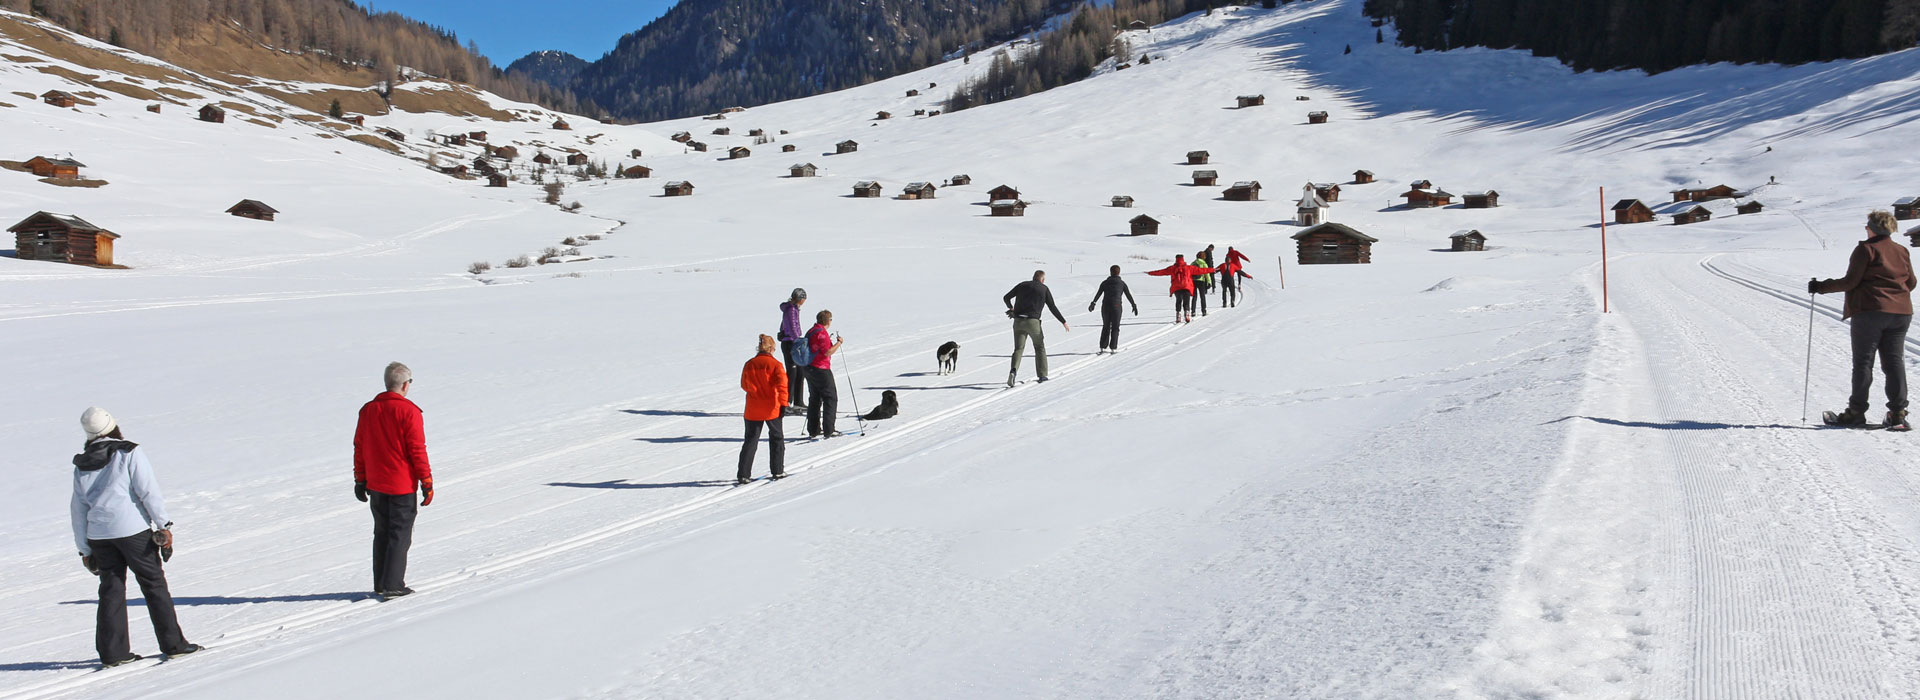 Cross Country Pool Service : Cross country skiing